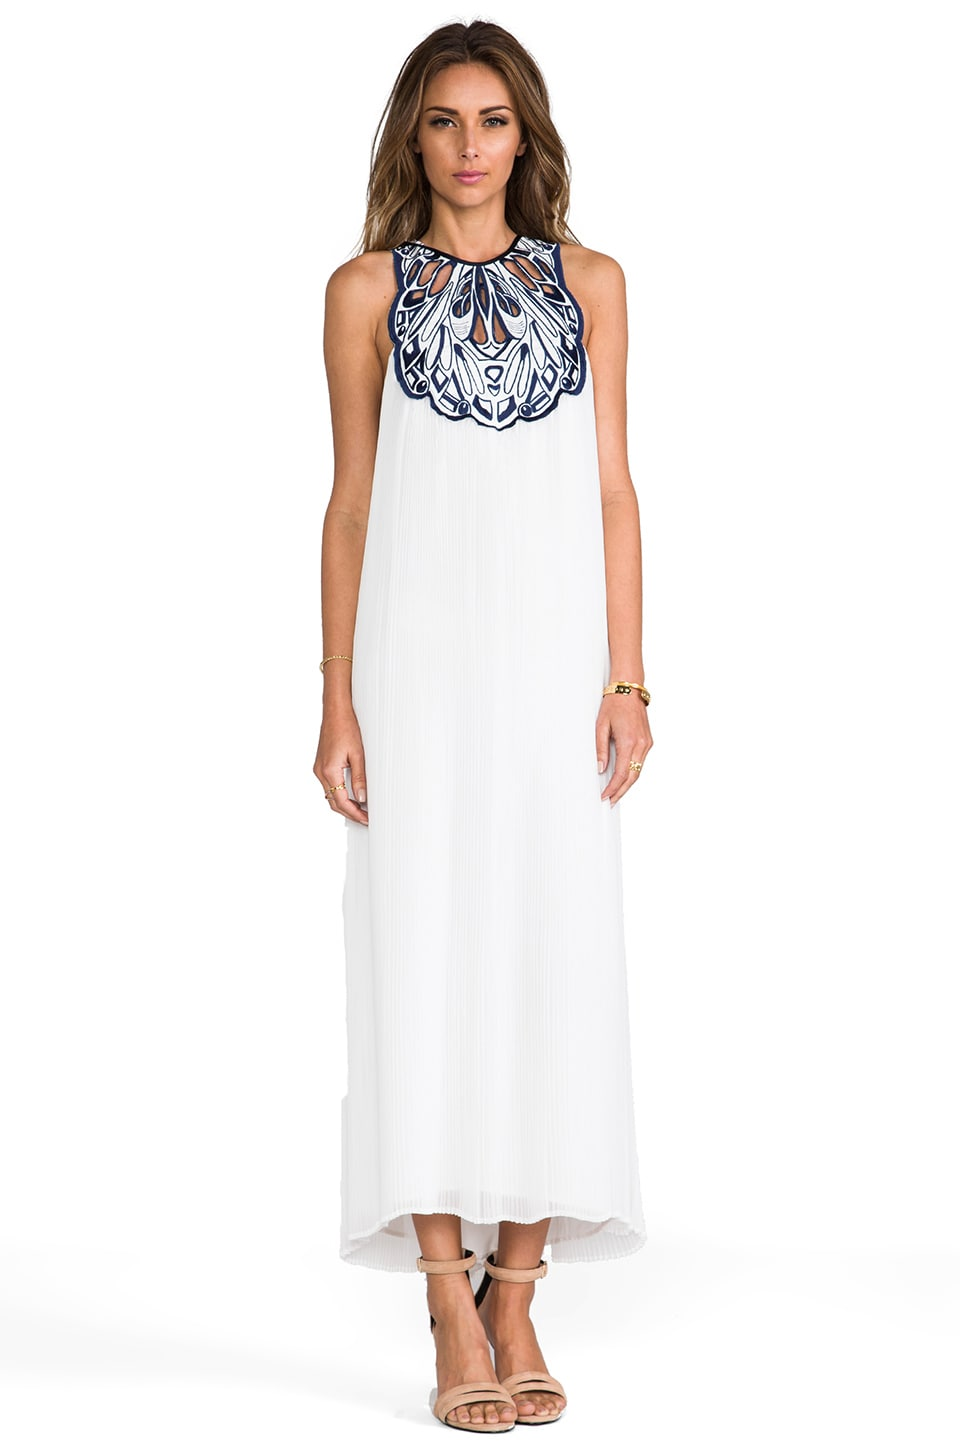 Alice McCall White Sea Maxi Dress in White & Navy